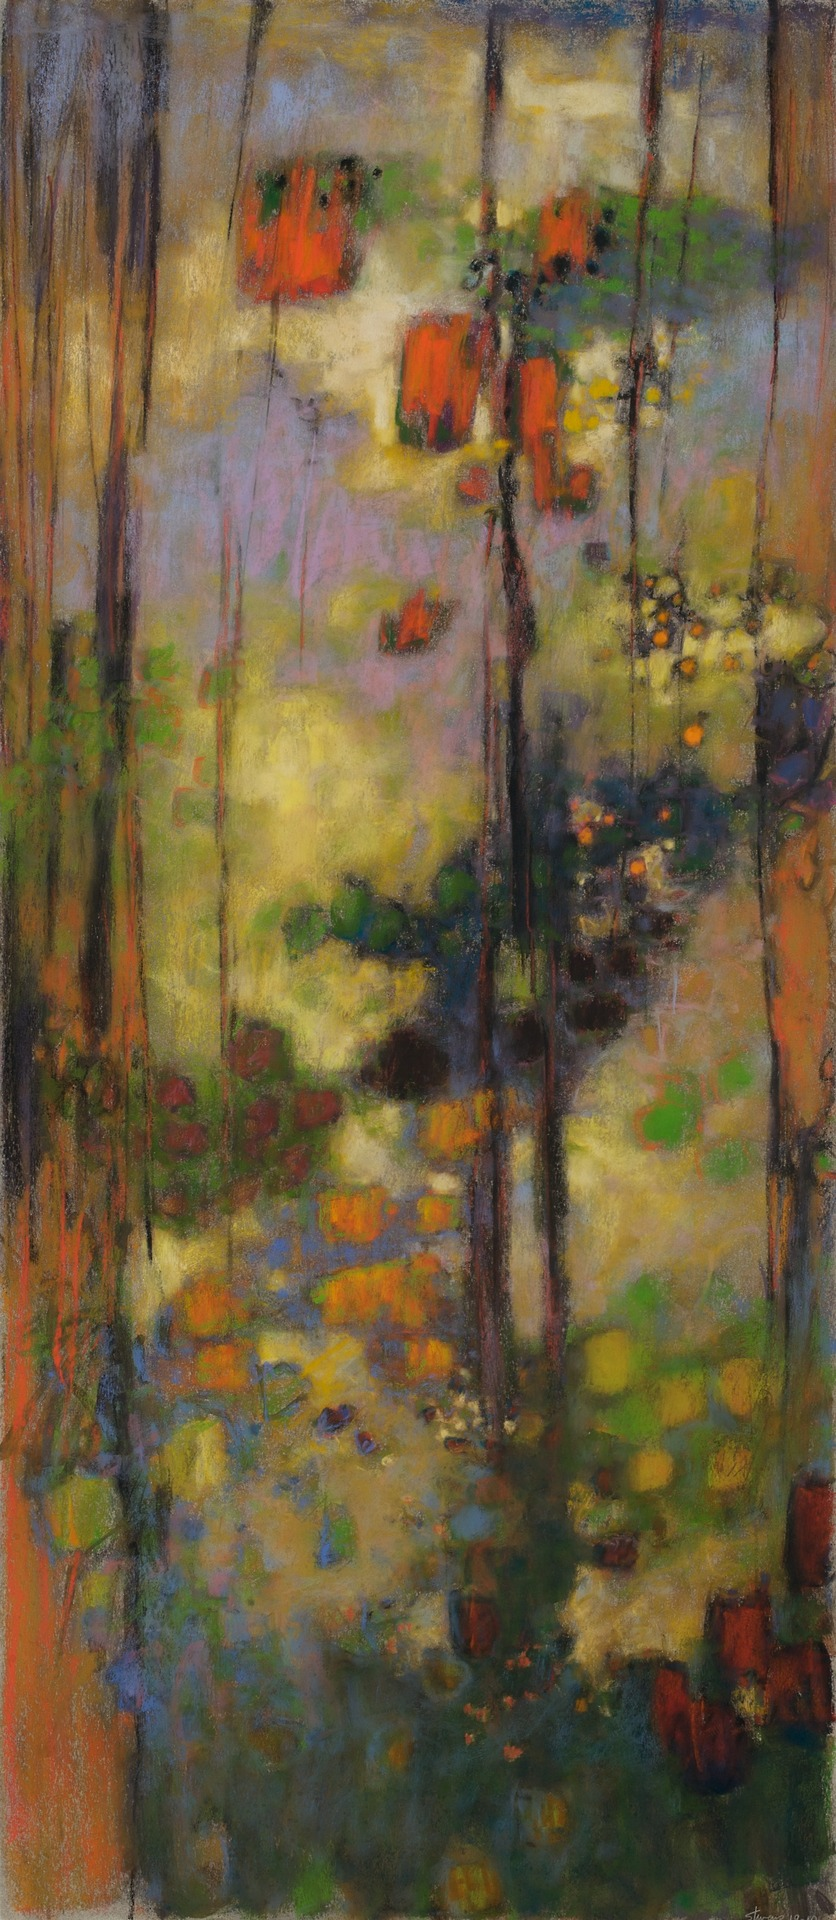 Dynamic Stillness   | pastel on paper | 25 x 30"